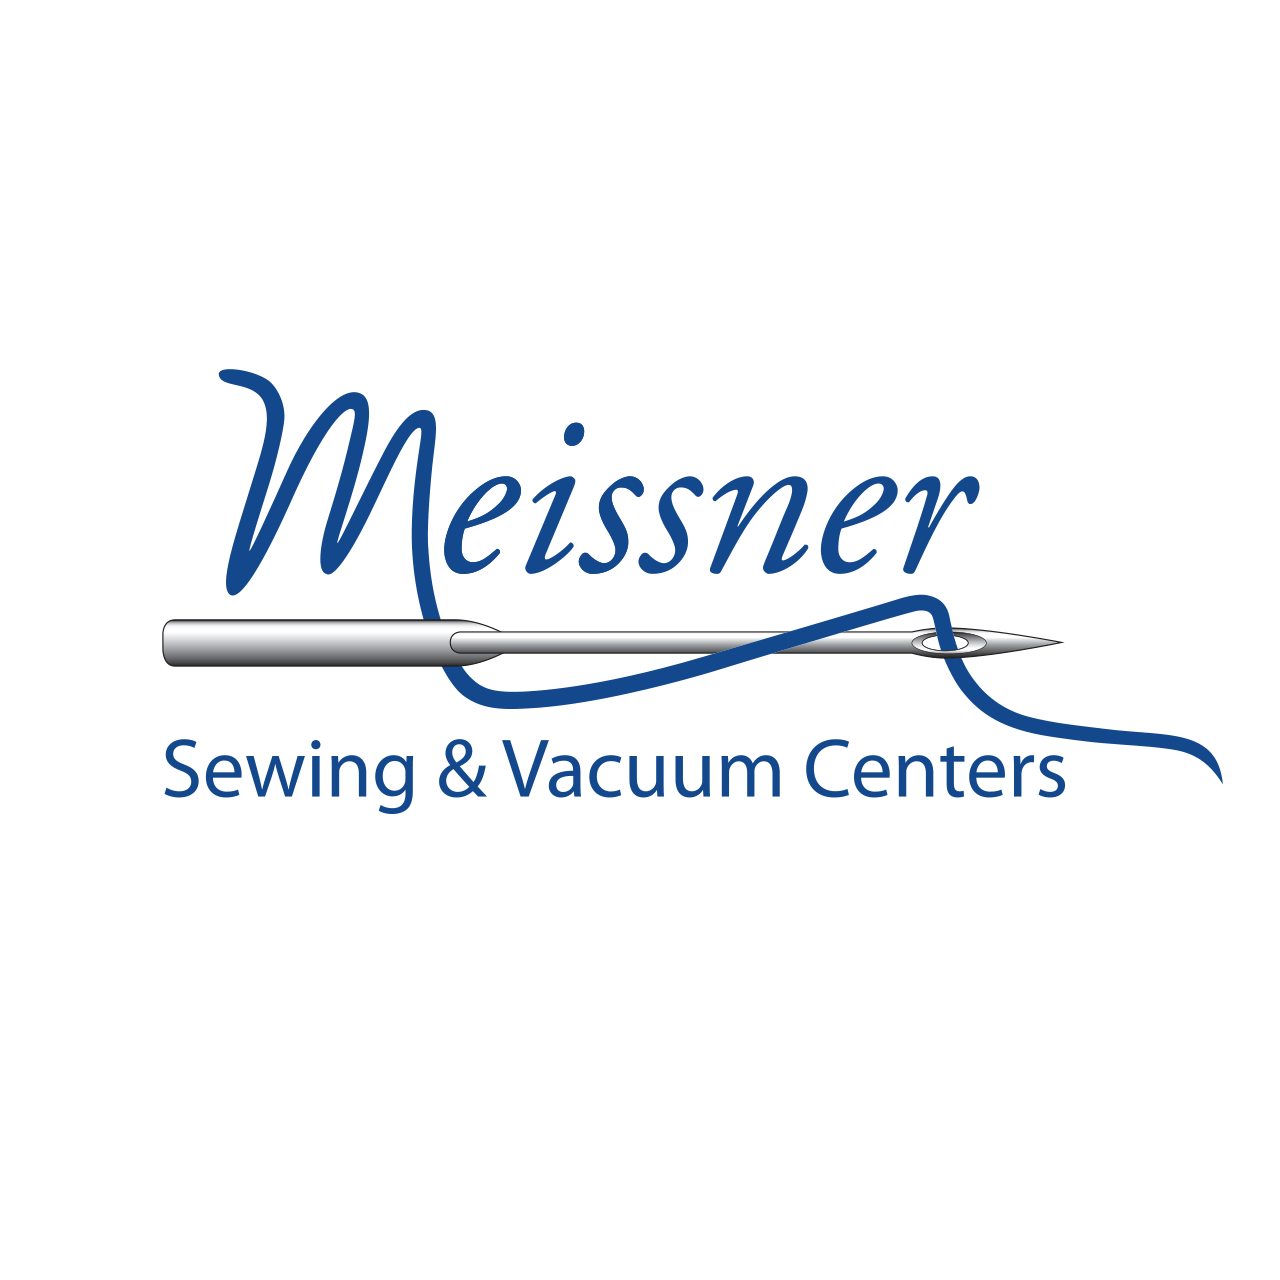 Viking Designer Epic Sewing Embroidery Machine Meissner Sewing